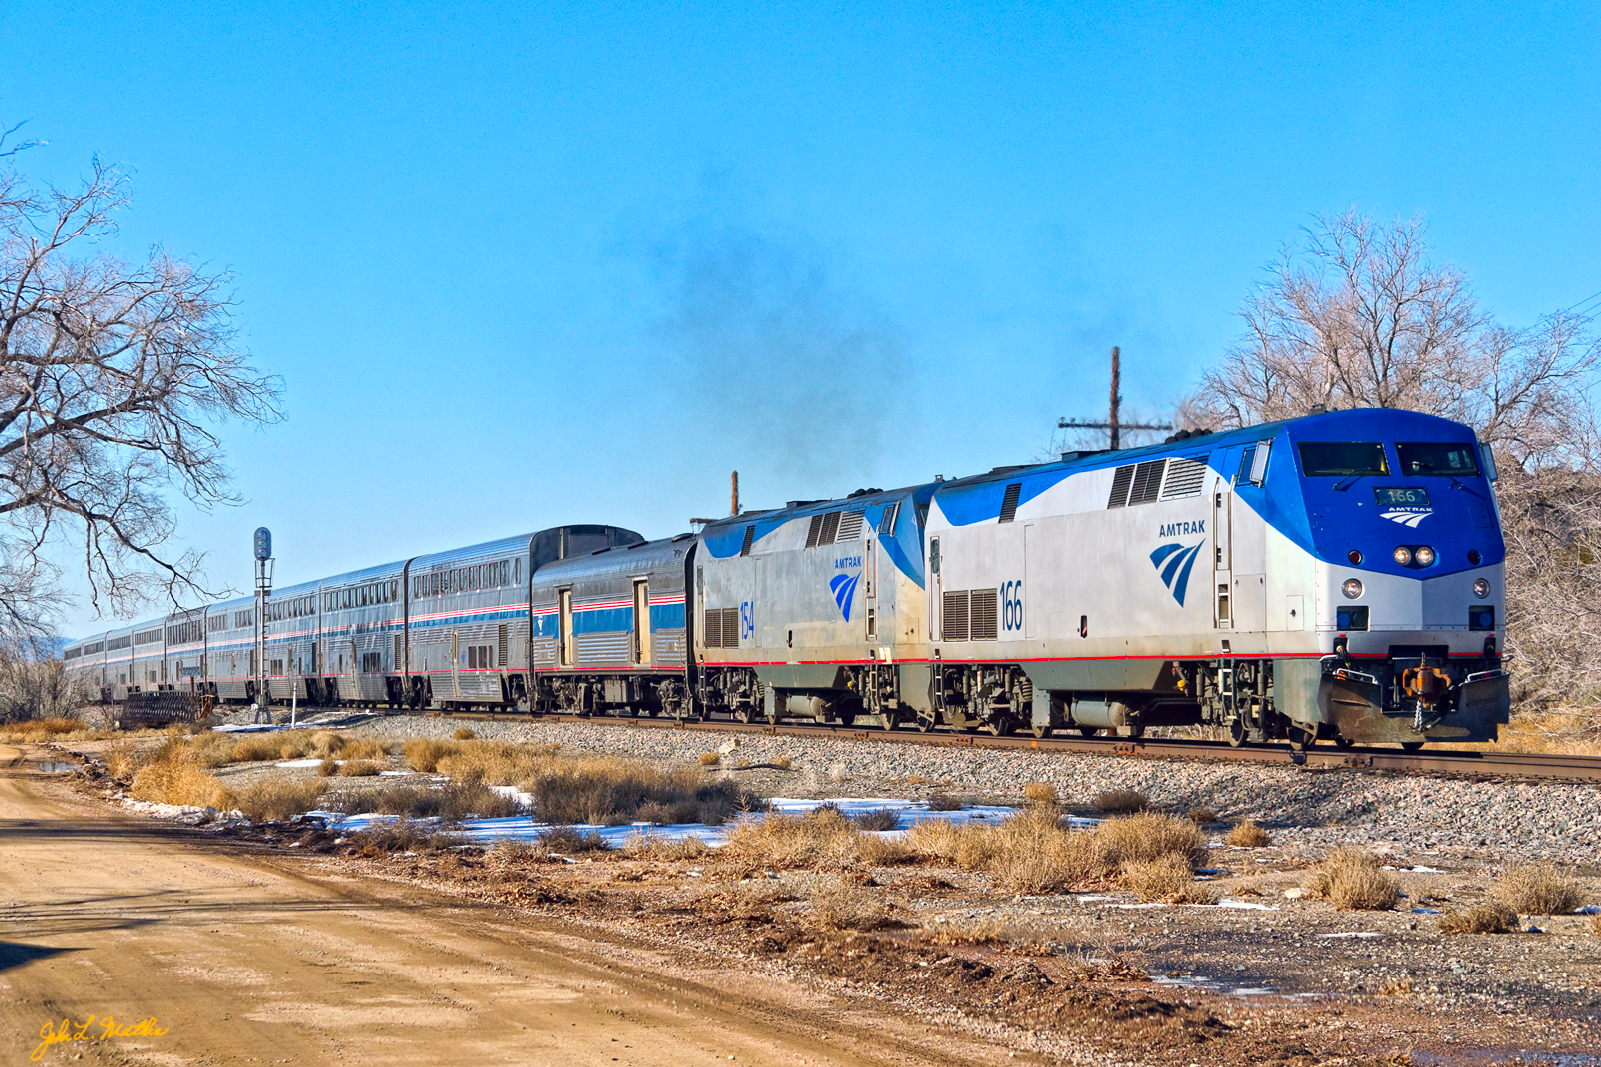 Amtrak 166 passes through Cerrillos, NM on November 30, 2013.